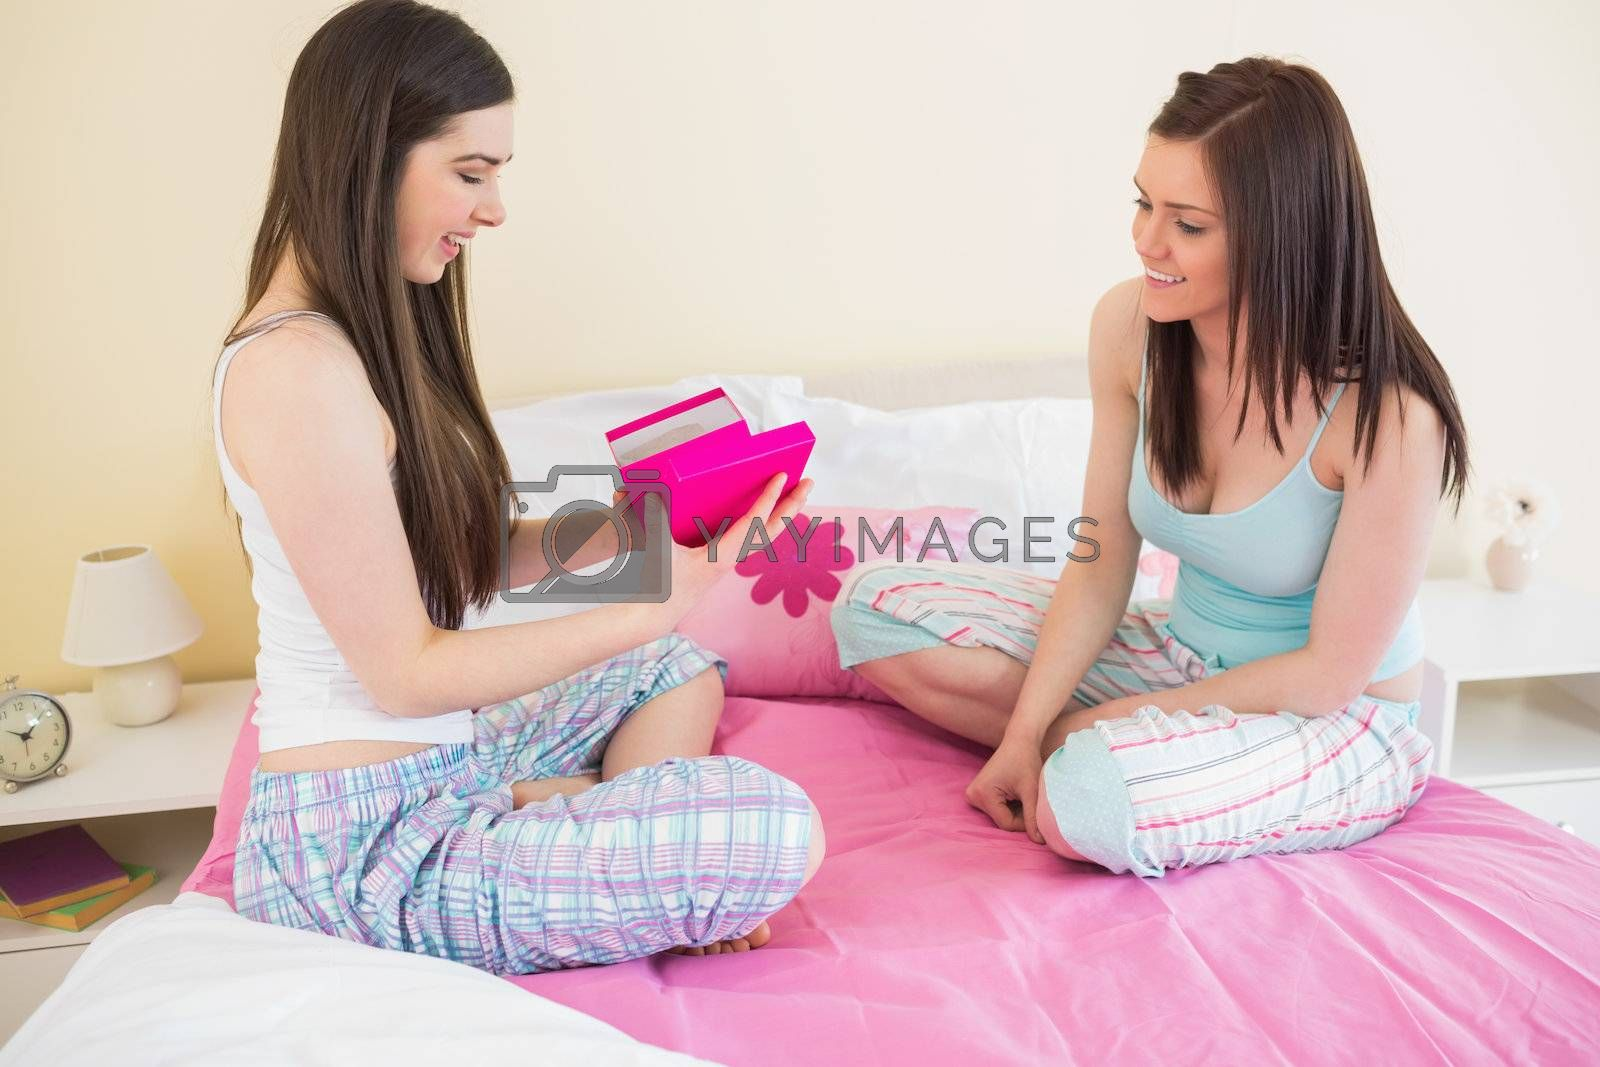 Happy girl in pajamas opening a present from her friend by Wavebreakmedia